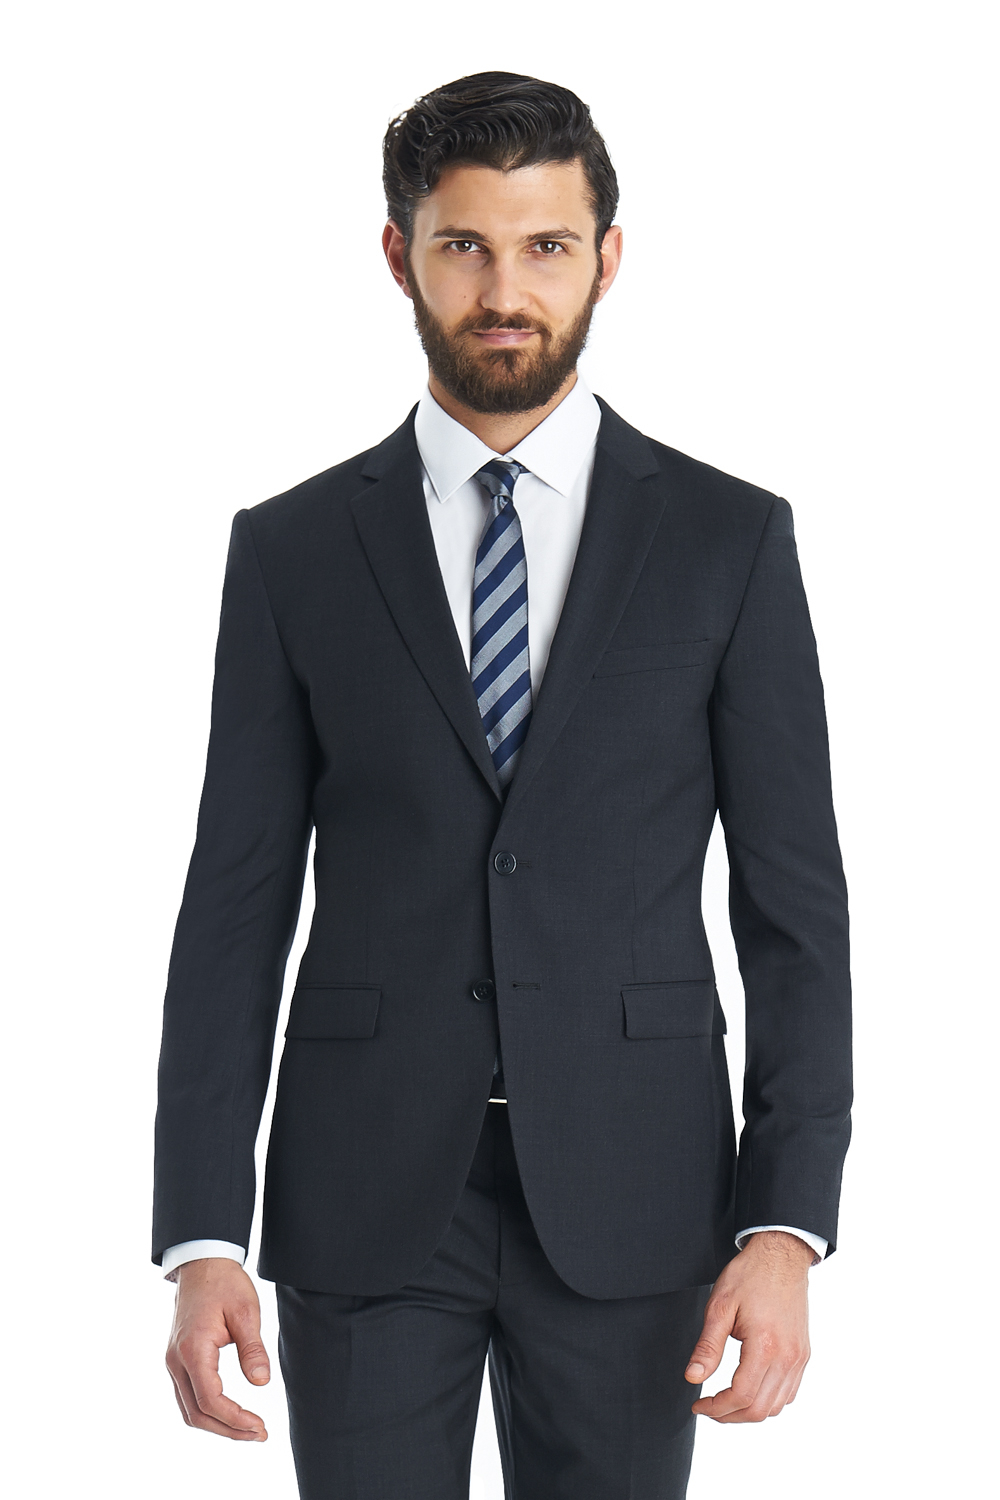 Dkny Slim Fit Charcoal 2 Piece Suit in Black for Men ...